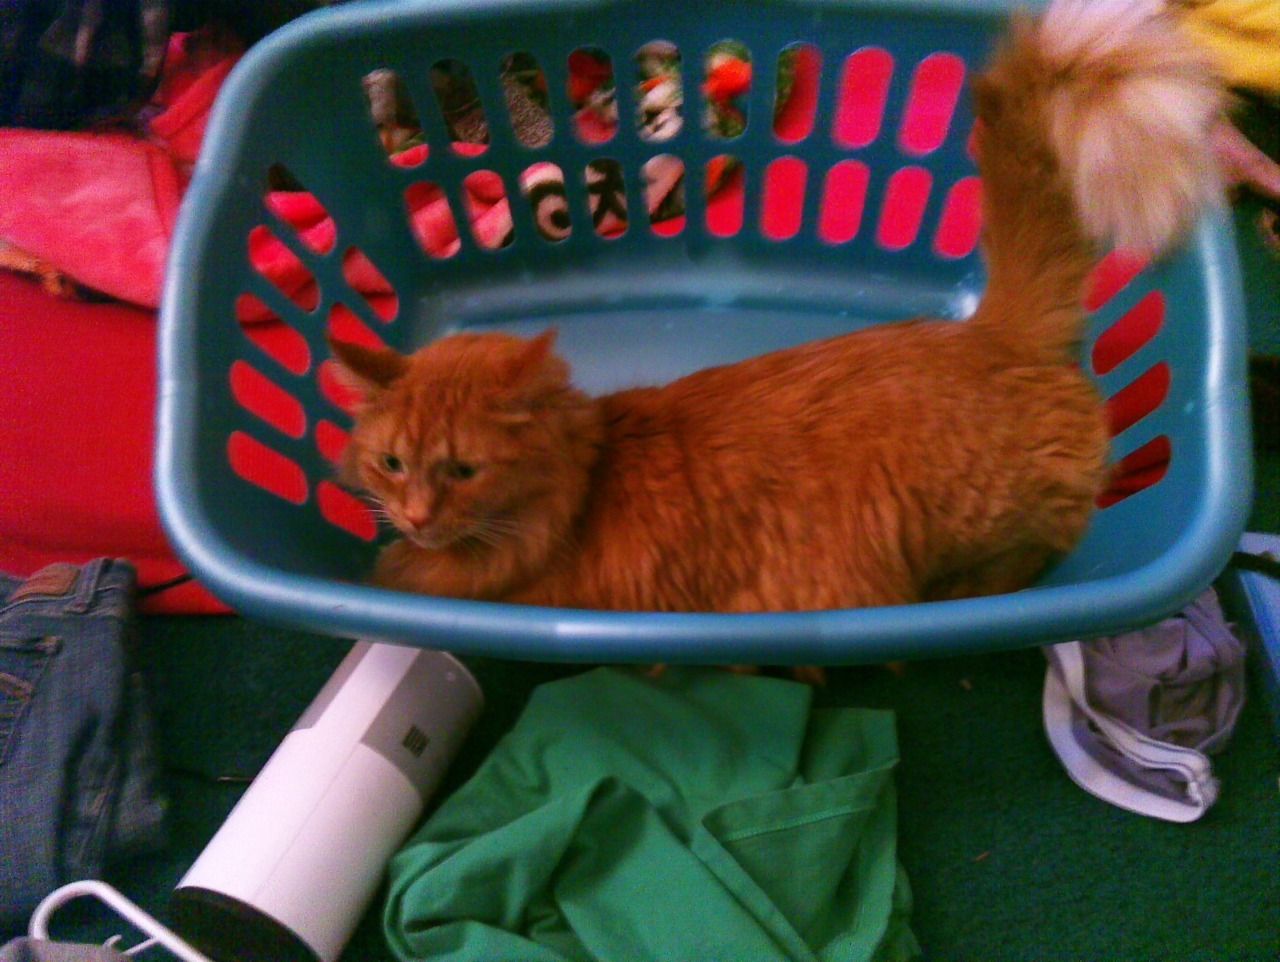 Nemo doesn't help do the laundry.